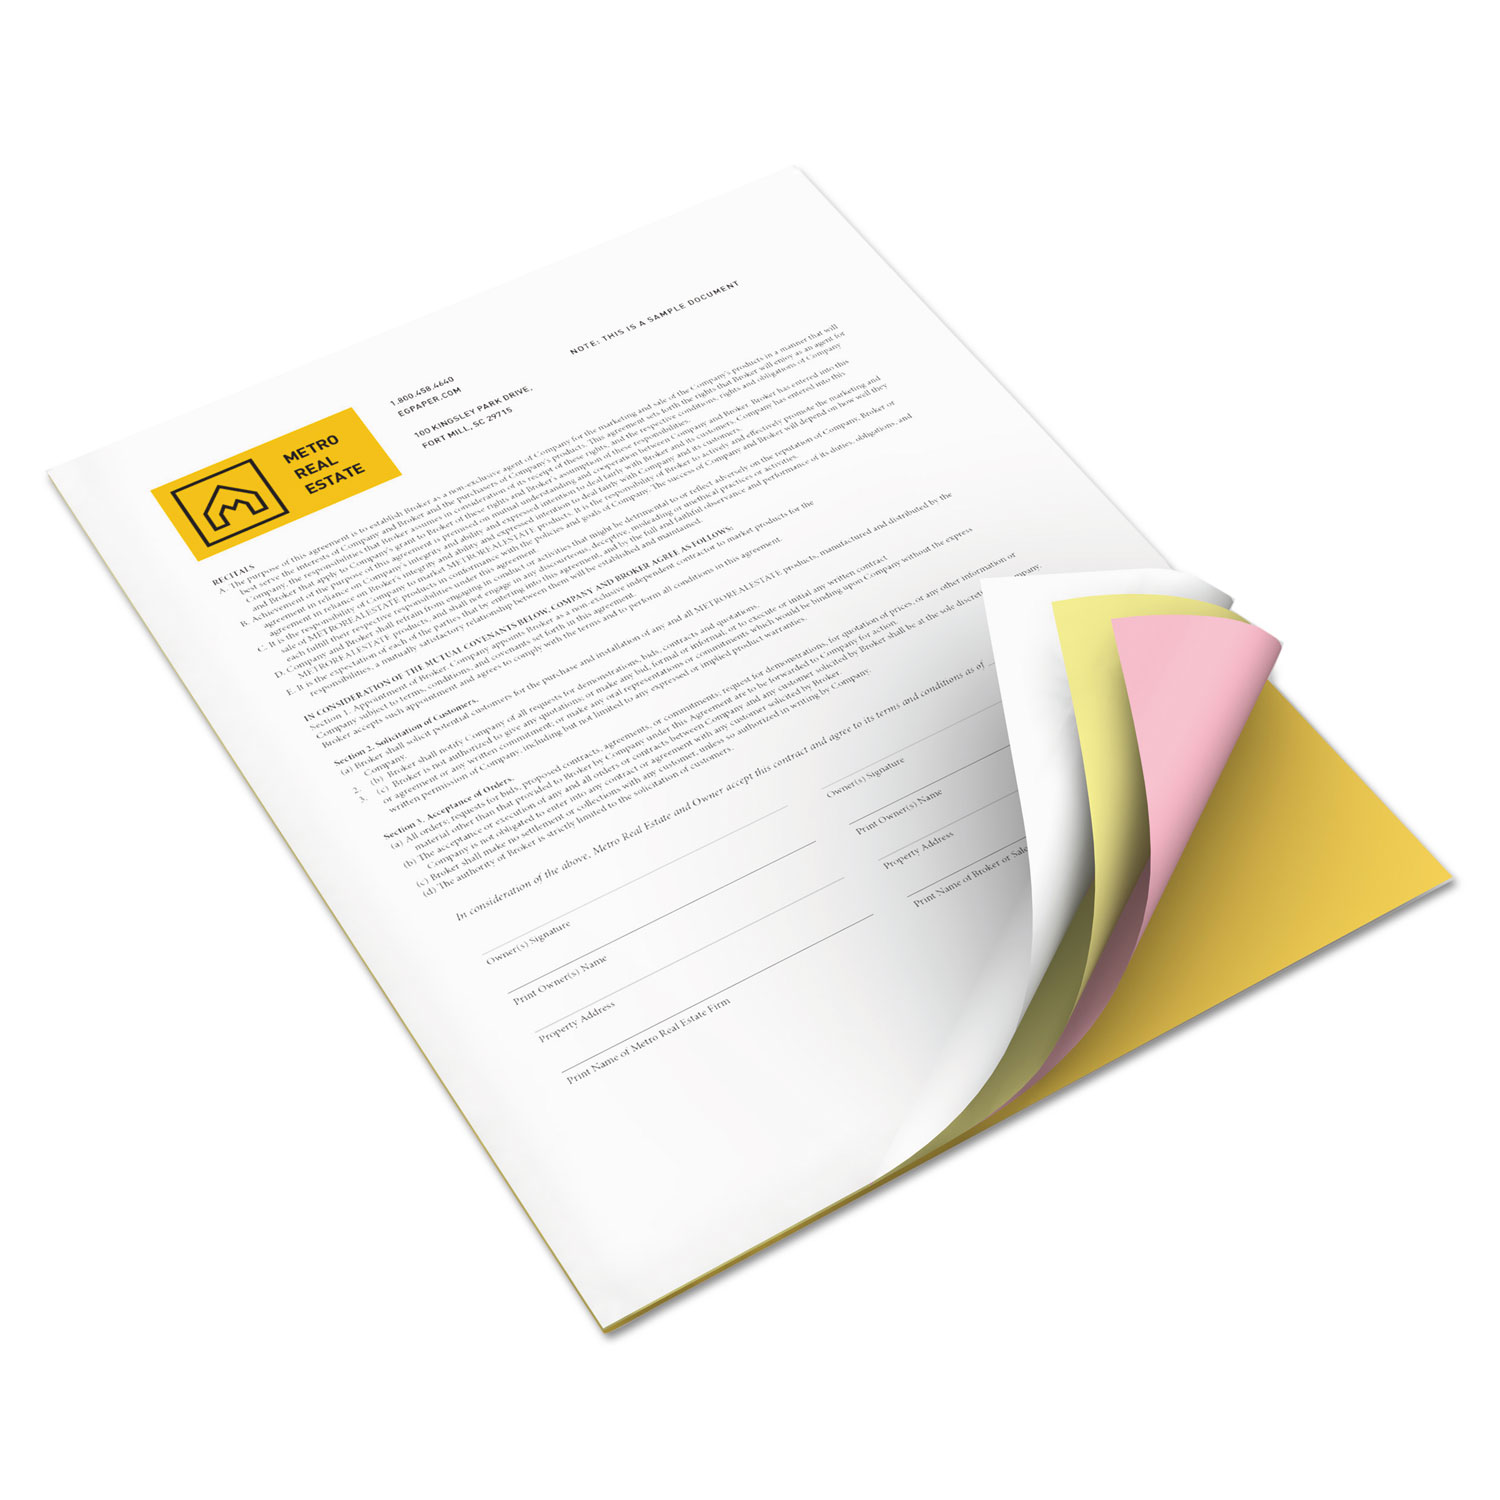 Vitality Multipurpose Carbonless 4-Part Paper, 8.5 X 11, Canary/Goldenrod/Pink/White, 5, 000/Carton